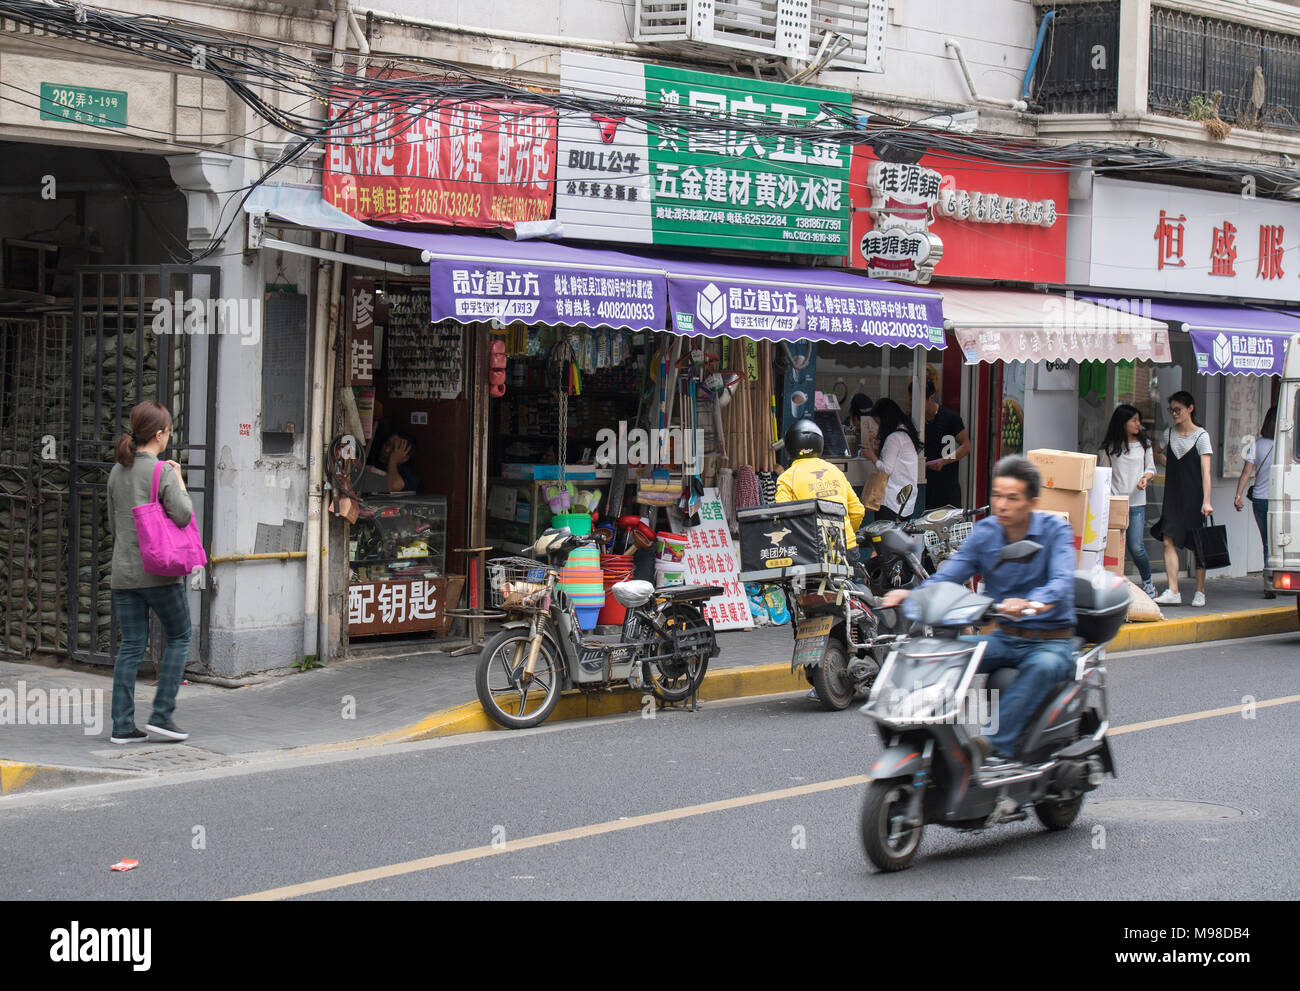 Busy street in the center of Shanghai, China - Stock Image